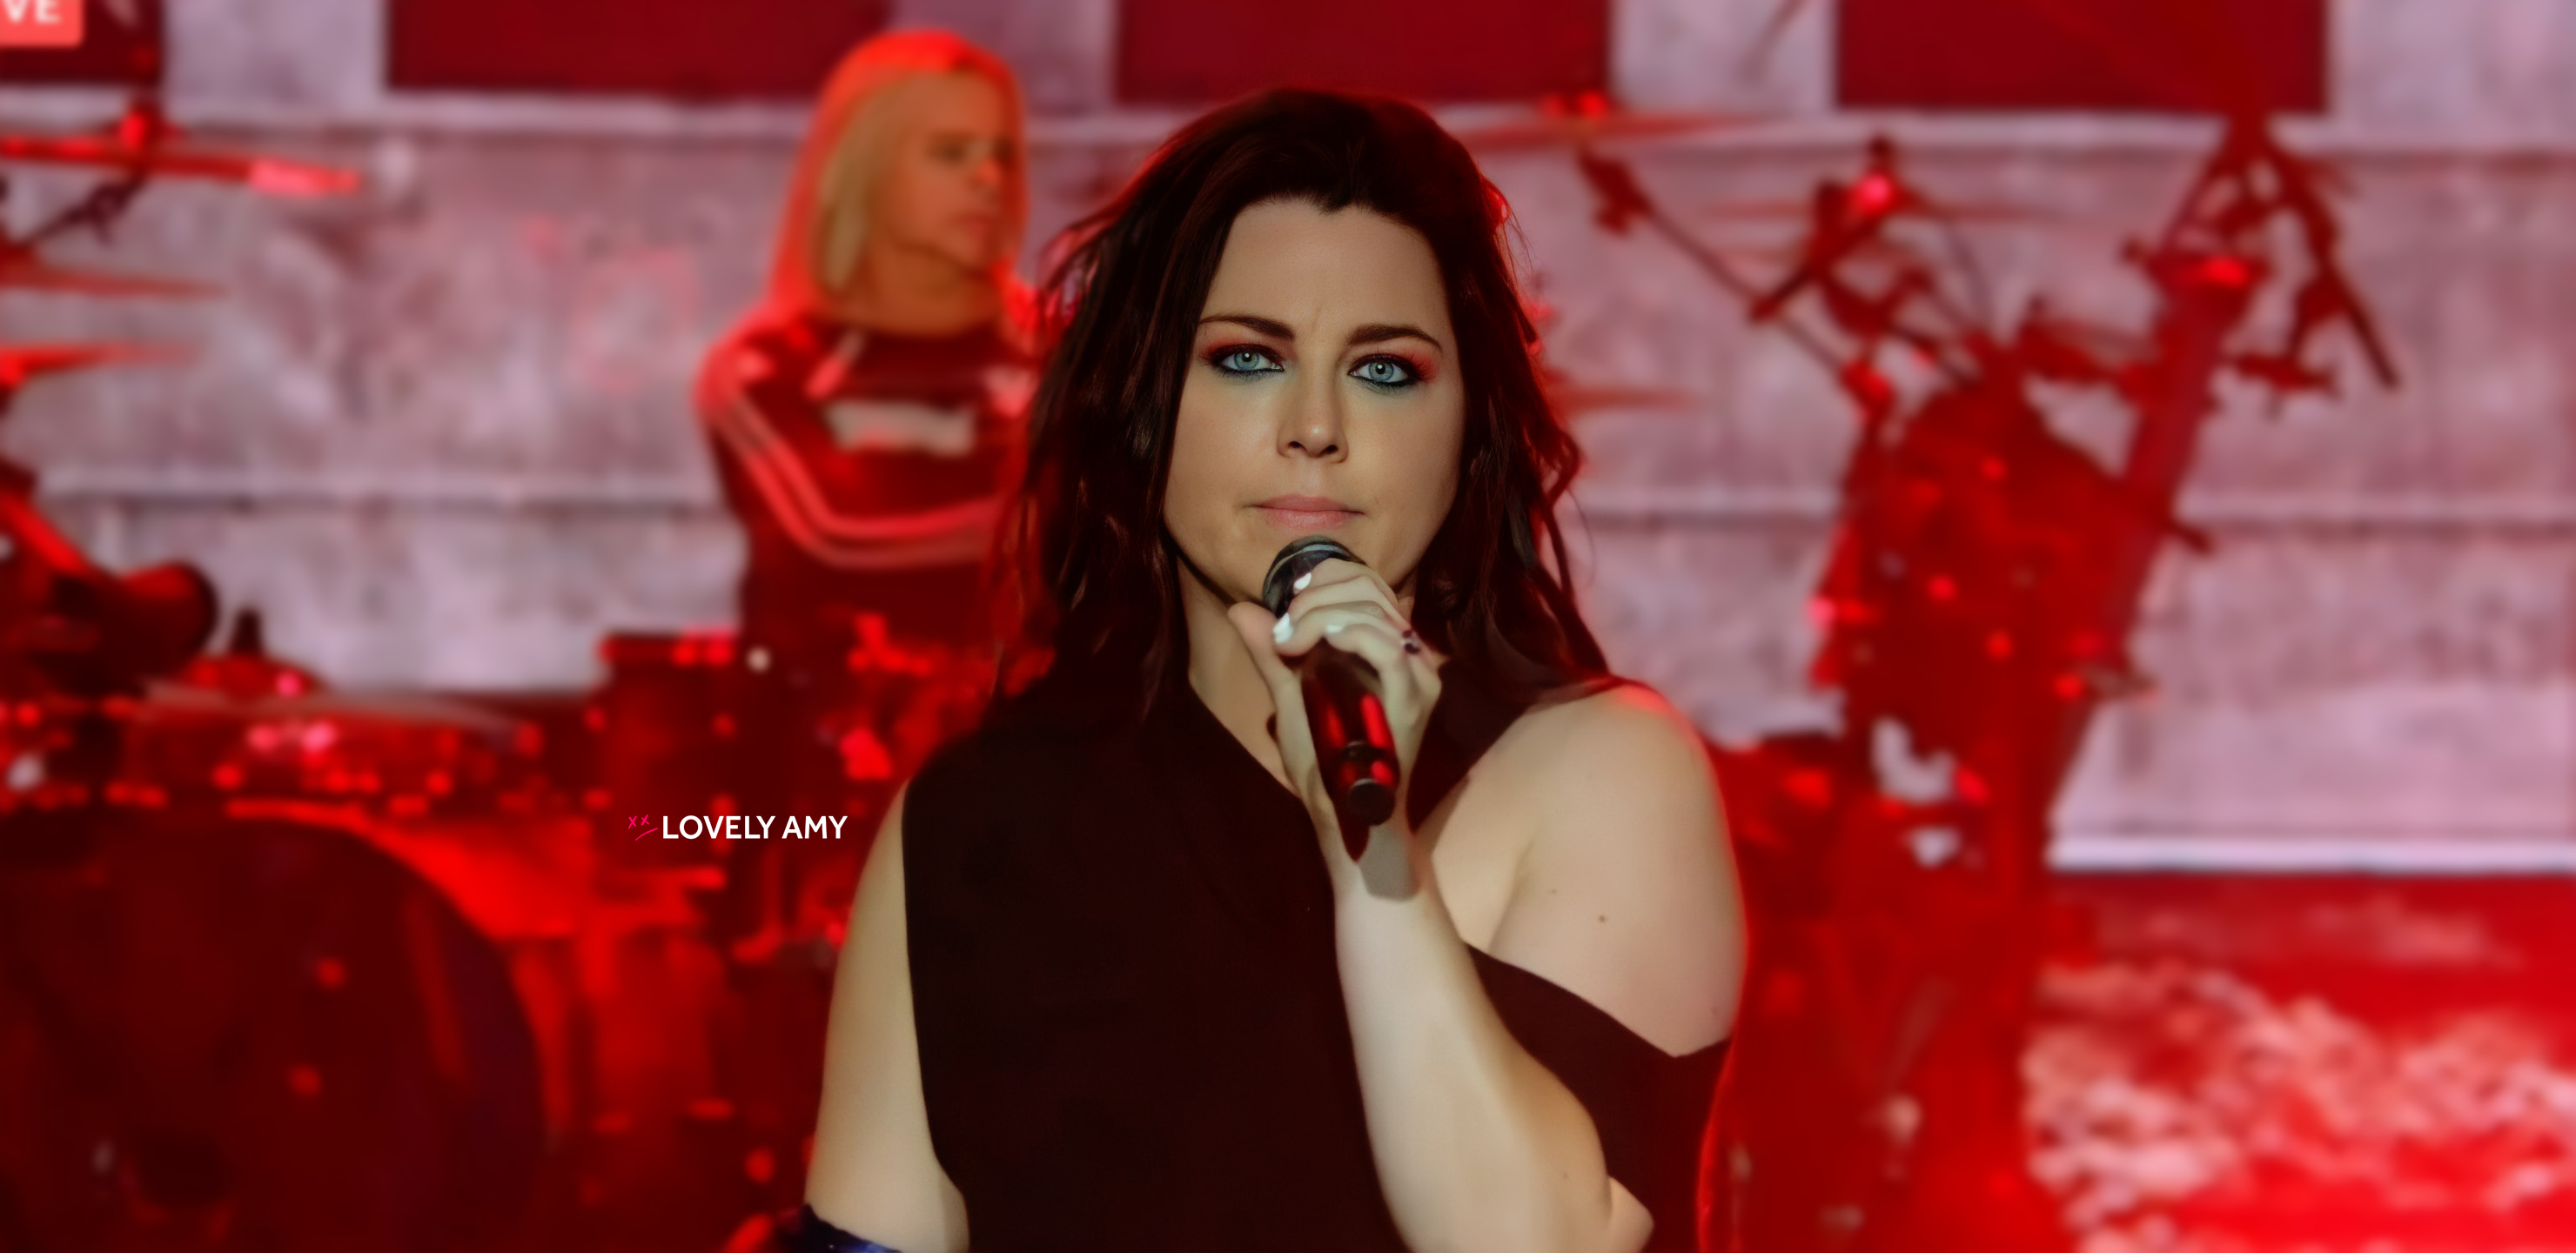 Evanescence Amy Lee - Driven To Perform Live Concert HQ HD #Evanescence #AmyLee